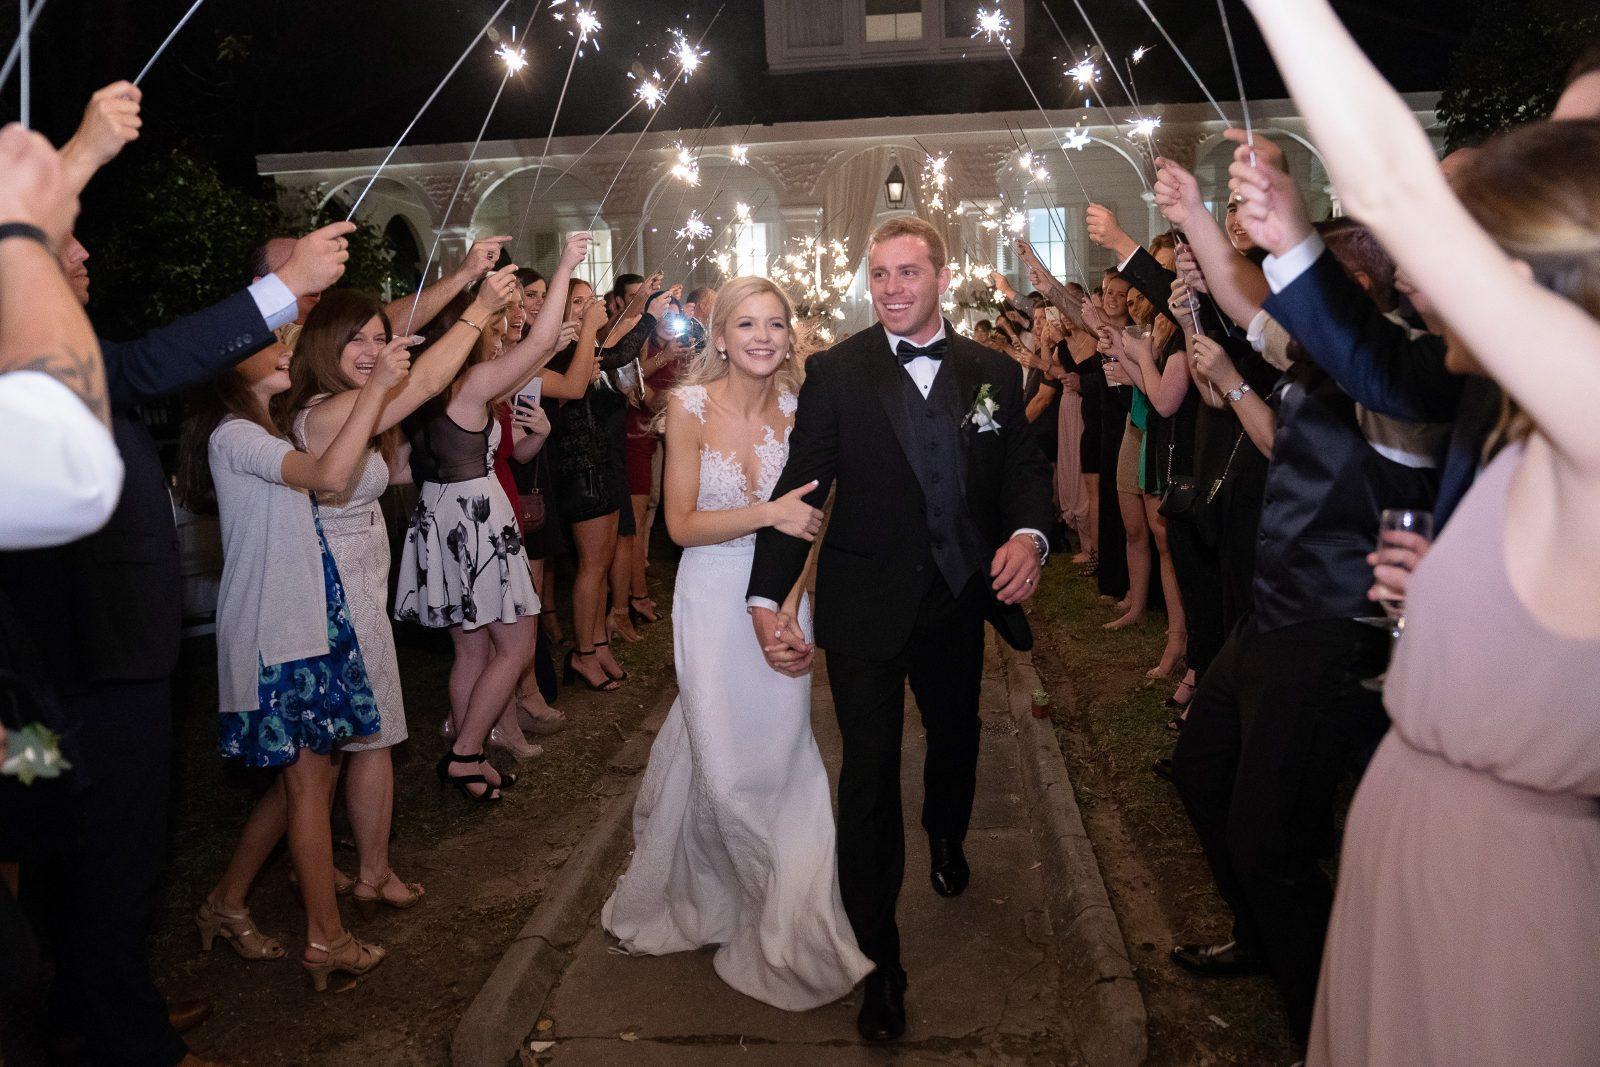 Kimberly + Corey: Memories At Maison Lafitte